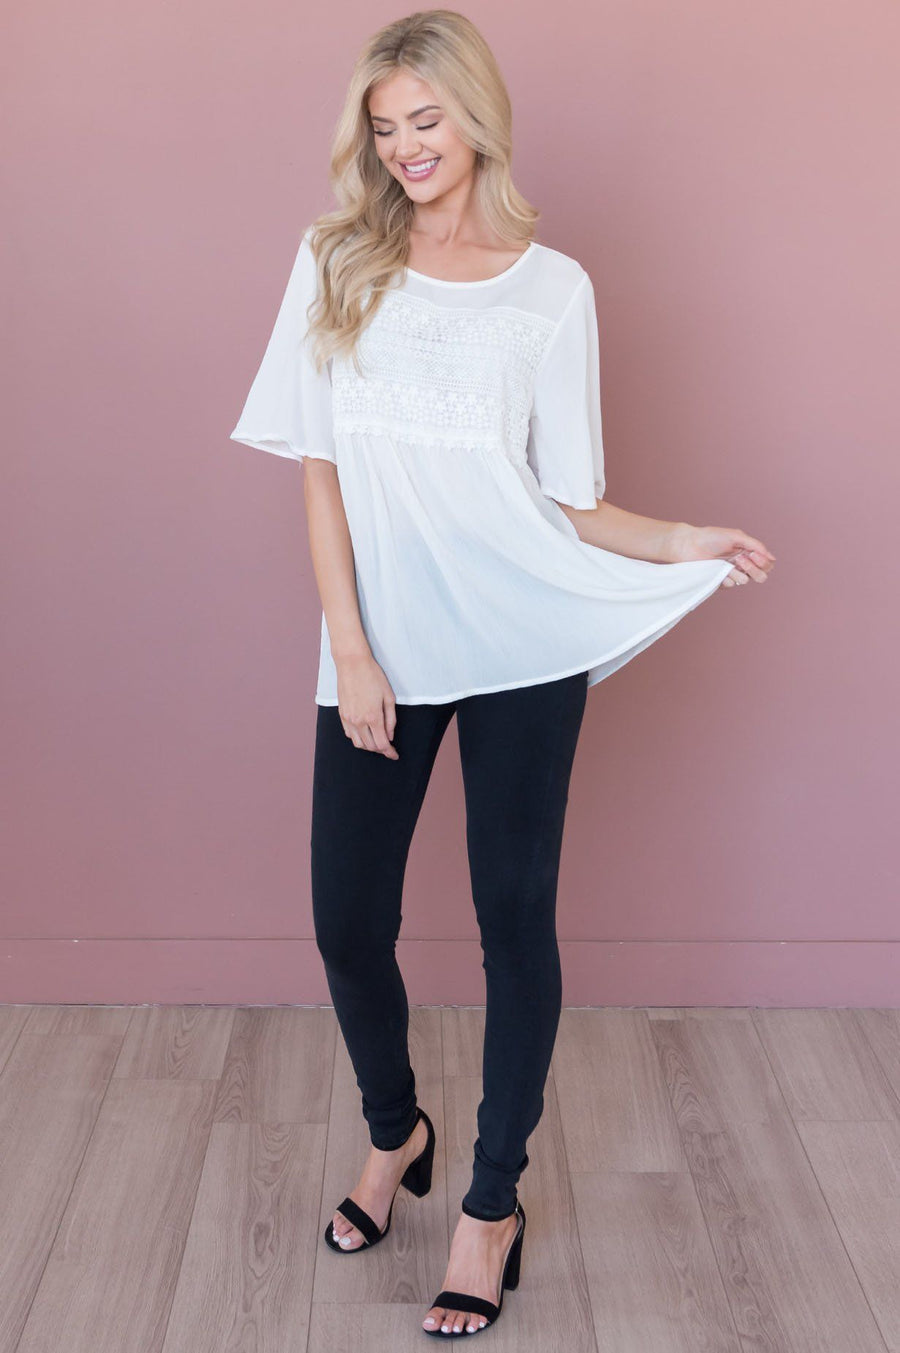 Delightful Days Ahead Modest Lace Bodice Top